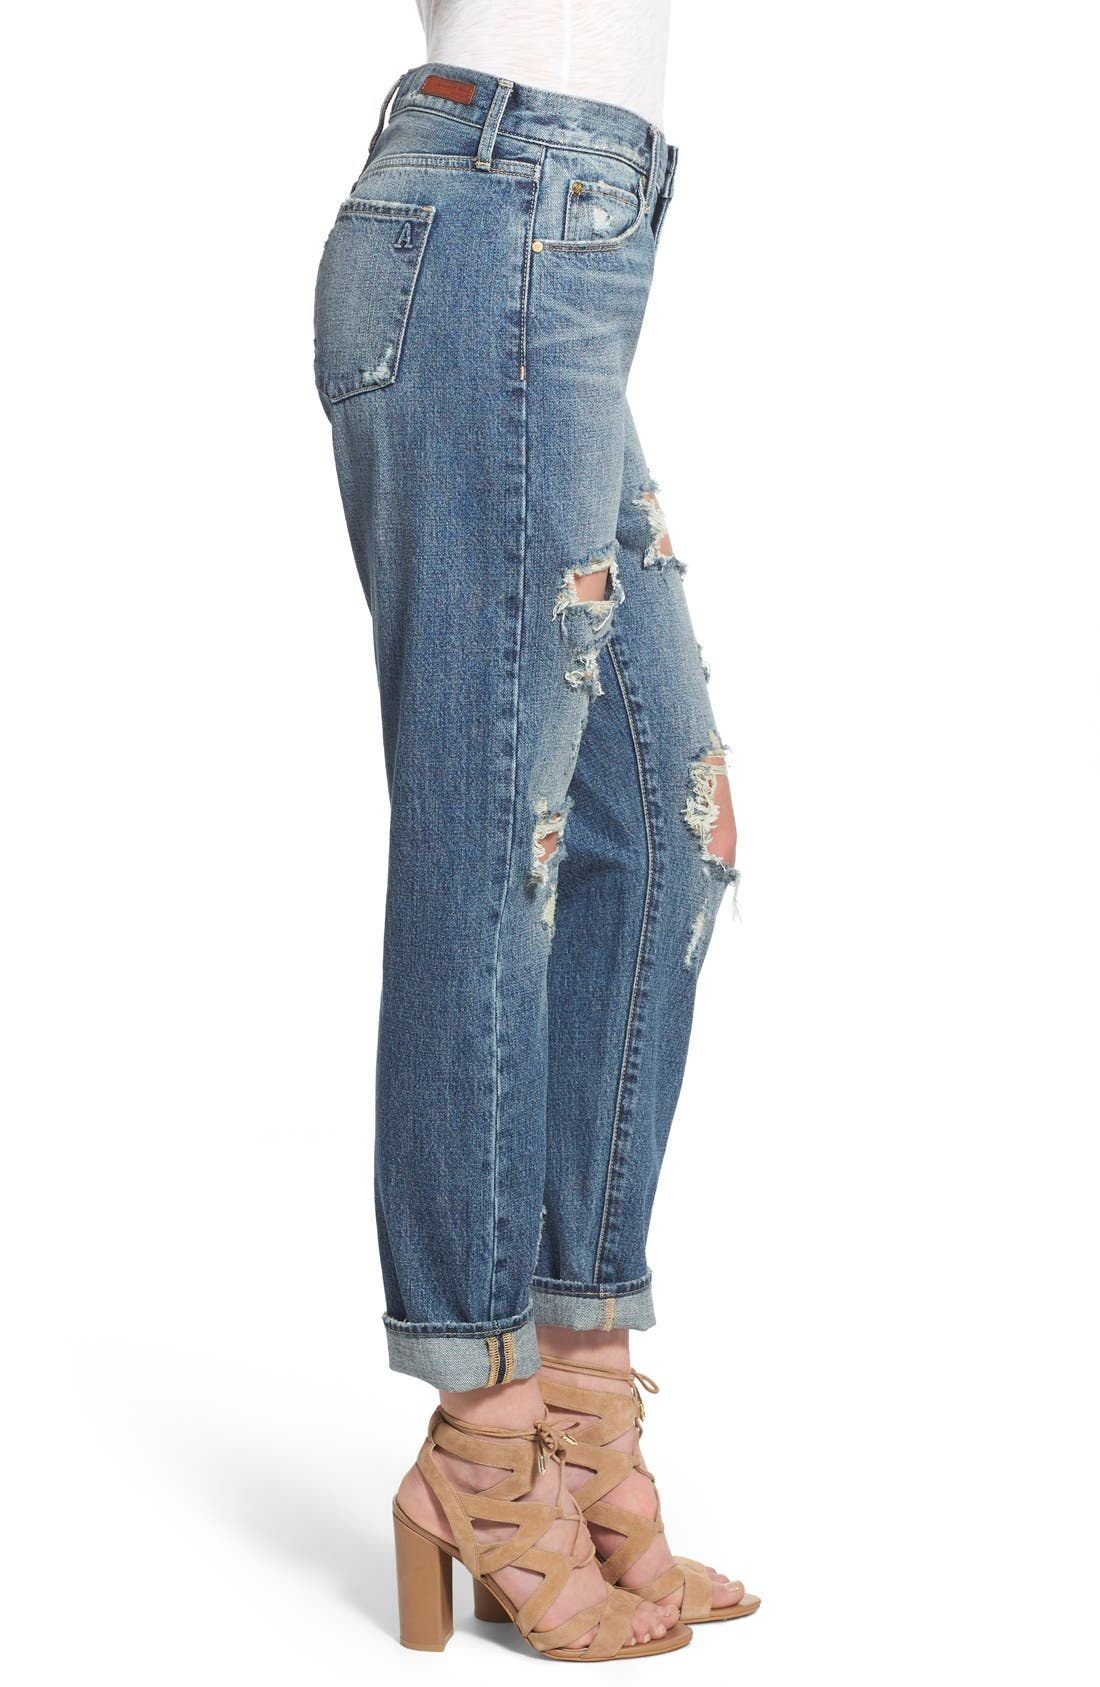 ARTICLES OF SOCIETY,                             'Janis' Destroyed Boyfriend Jeans,                             Alternate thumbnail 4, color,                             408